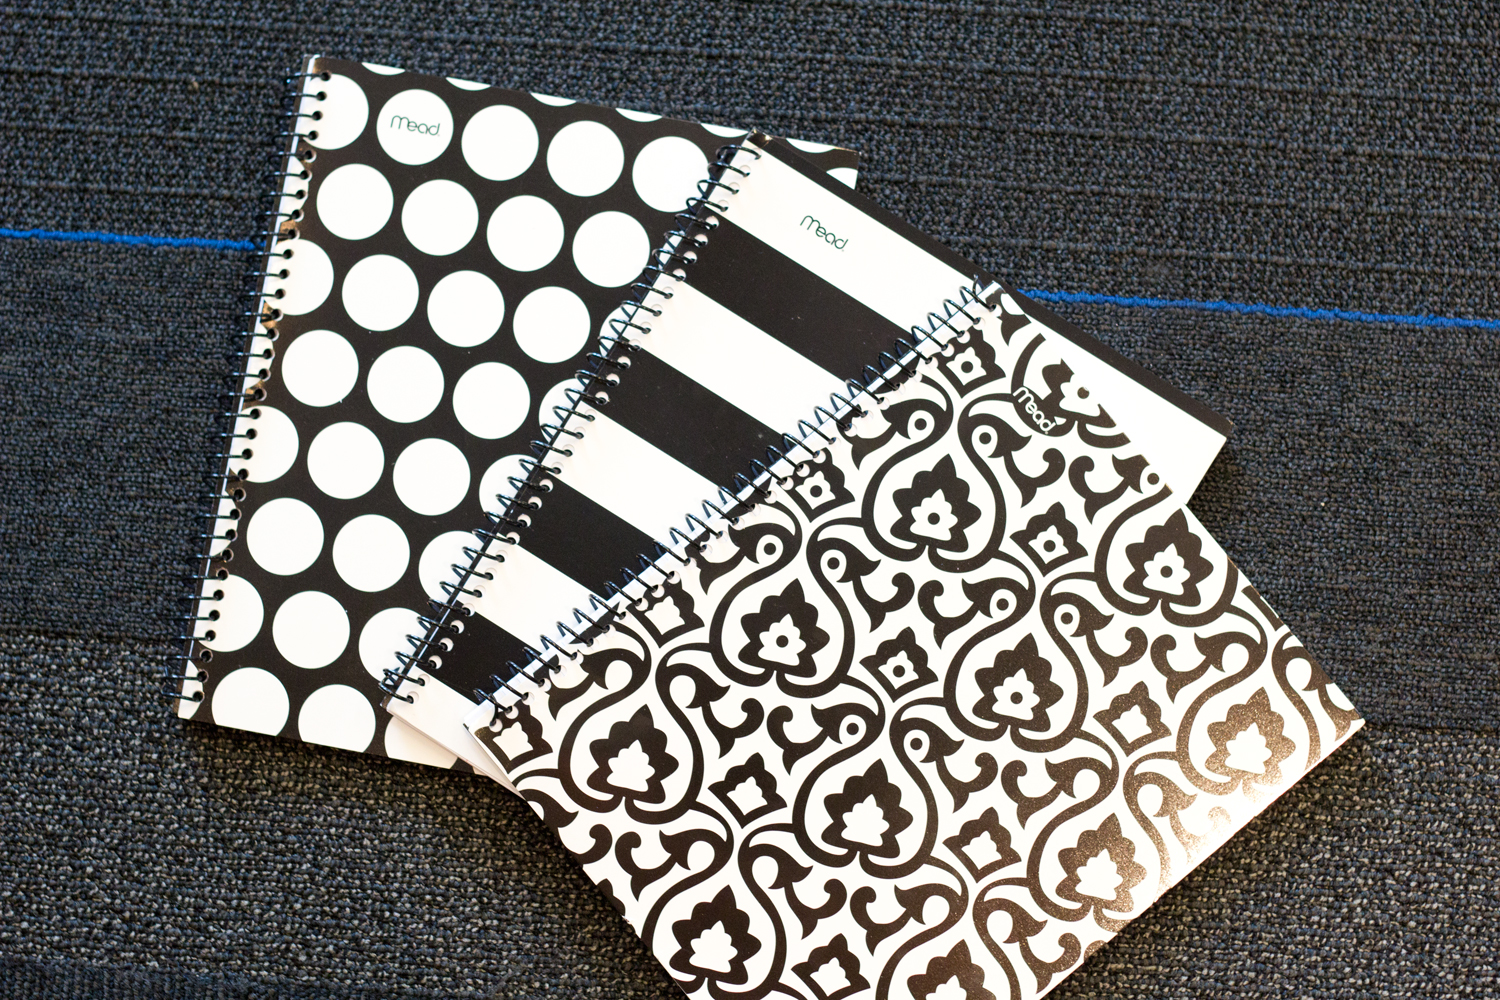 hilroy-notebook, polka-dot, stripes-black-and-white